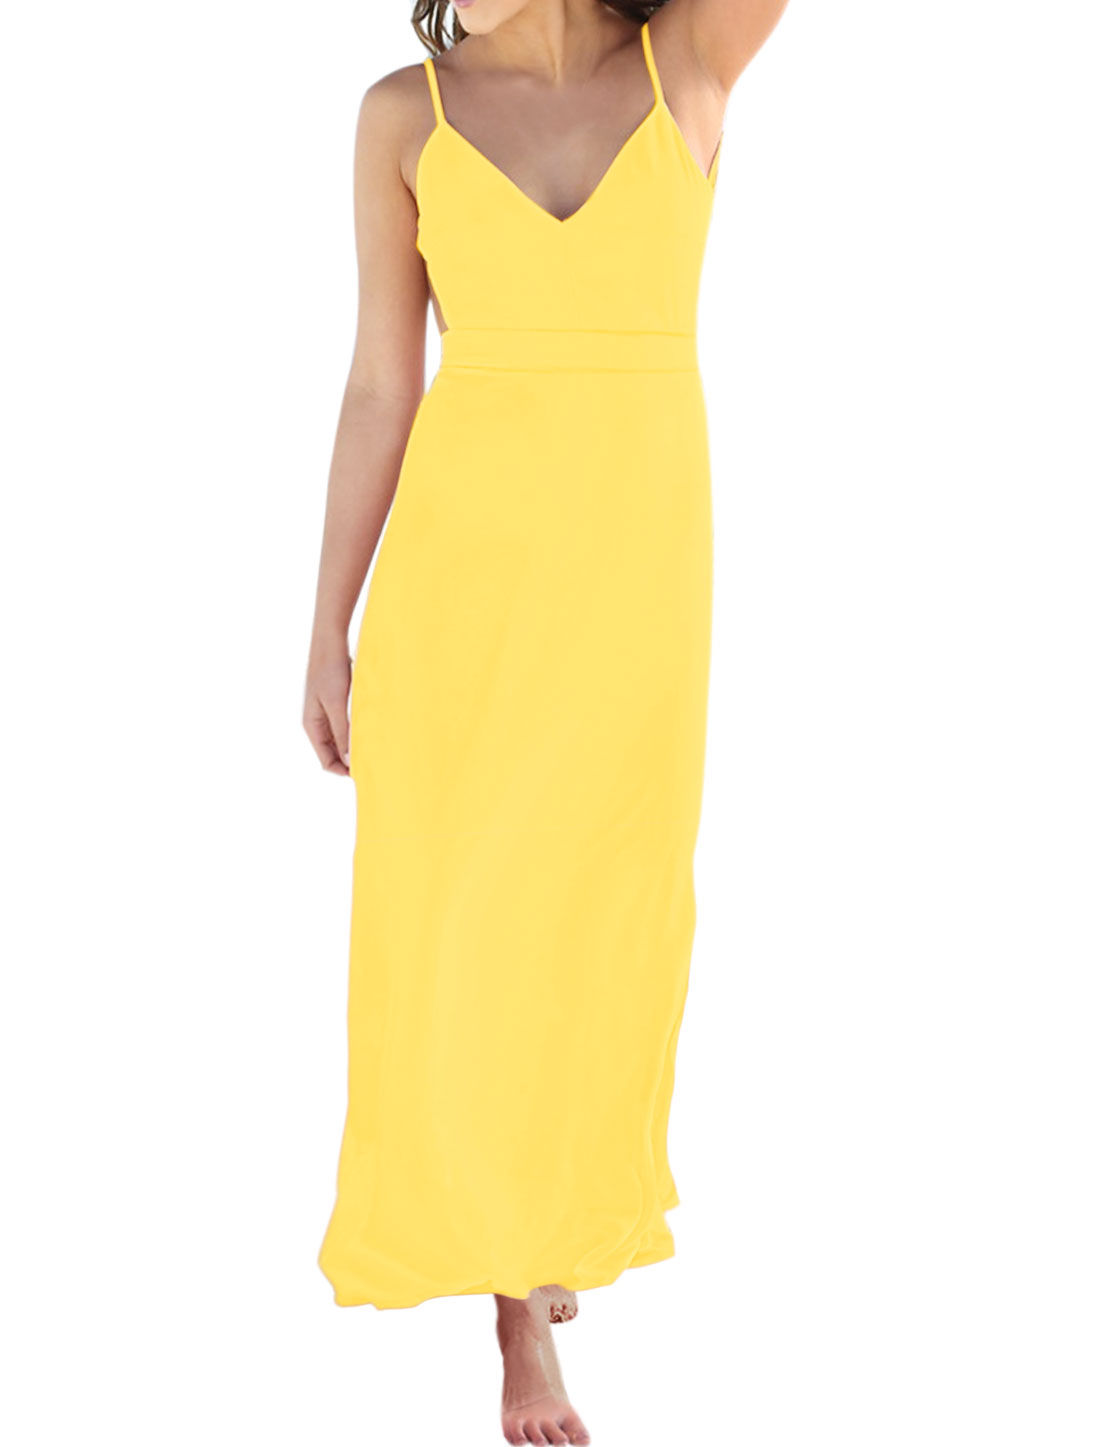 Women Backless V Neckline Spaghetti Straps Maxi Dress Yellow L